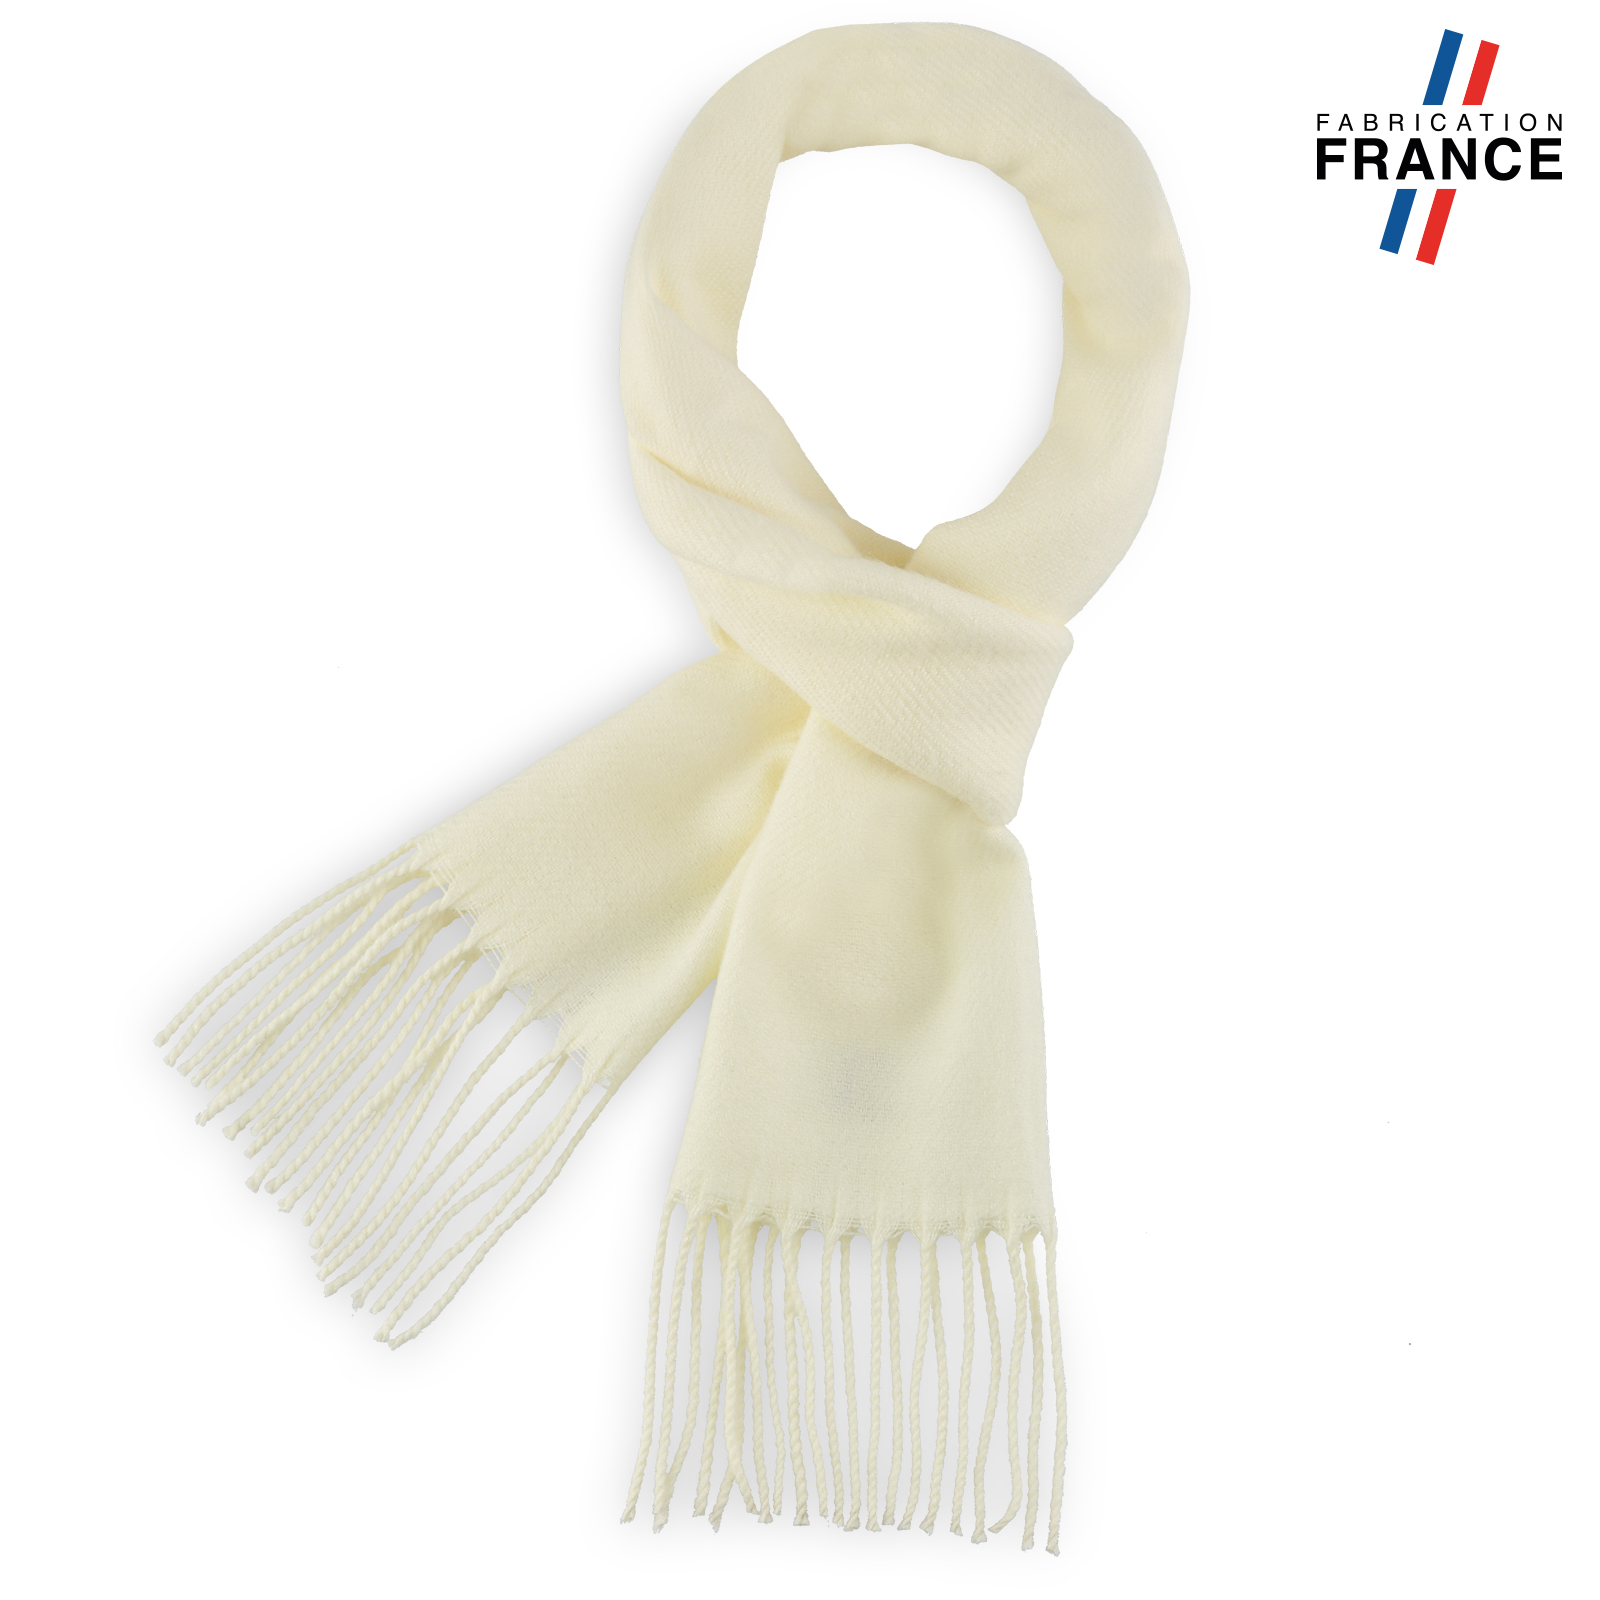 AT-03243-F16-echarpe-a-franges-ecru-fabrication-francaise